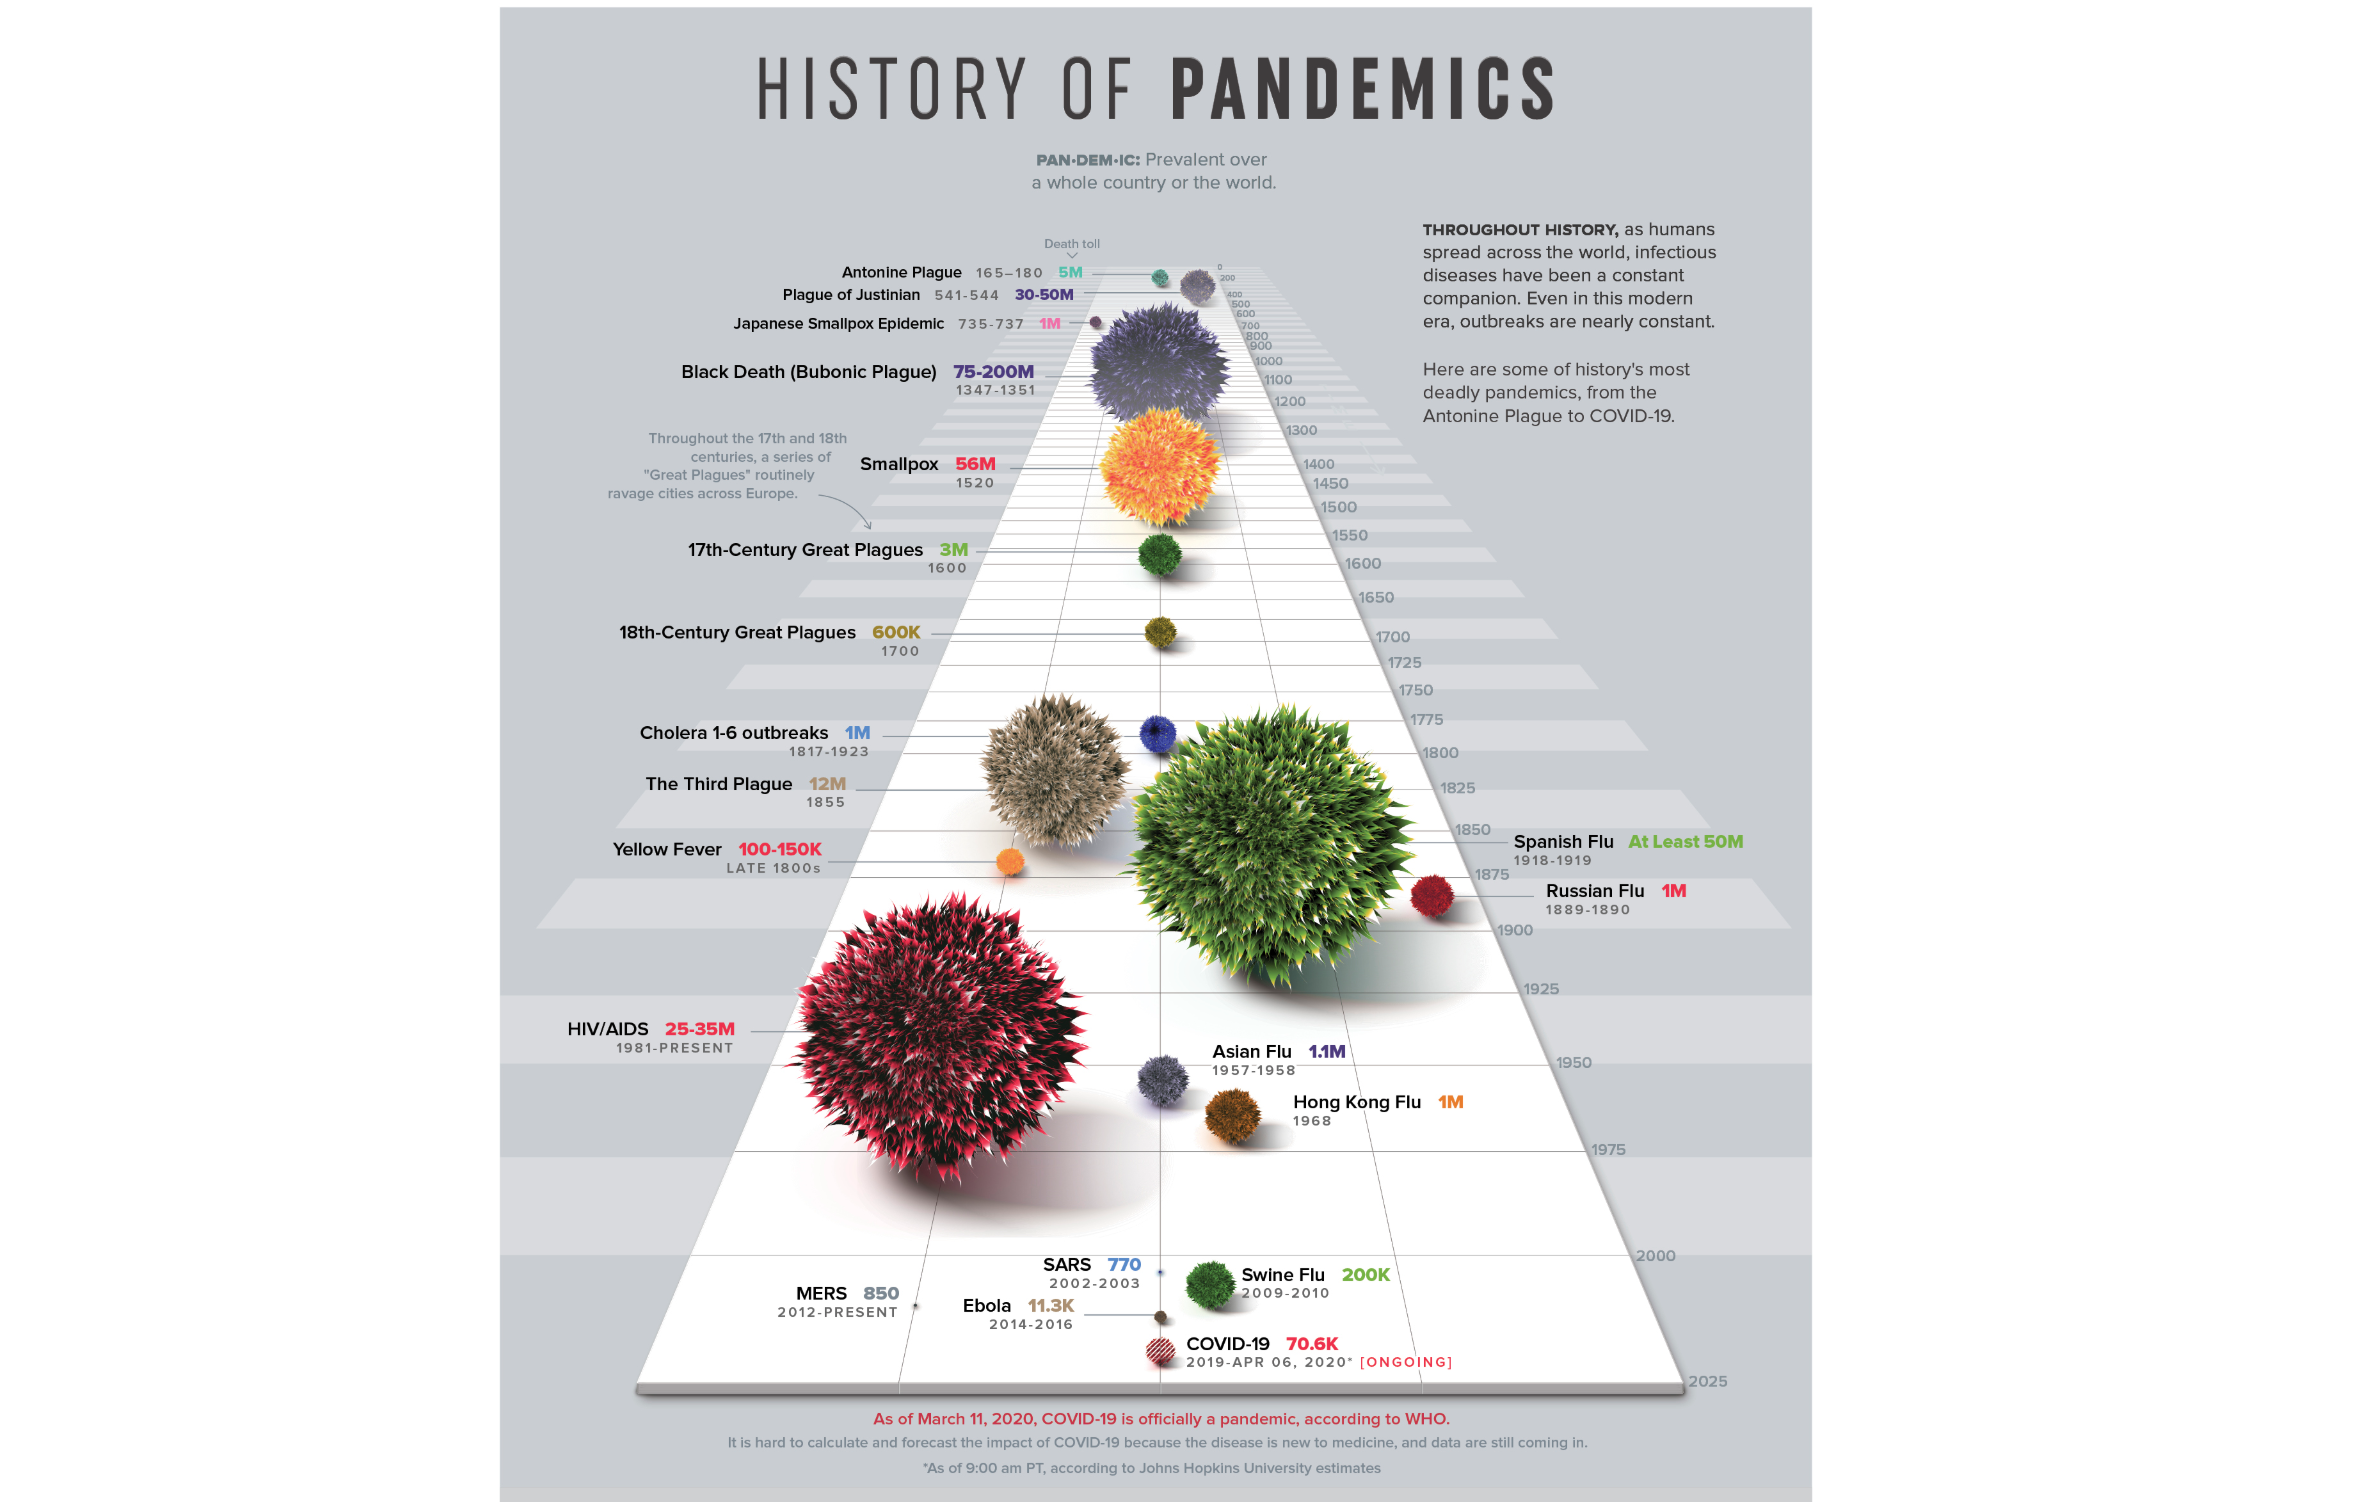 History's Most Deadly Pandemics, From the Antonine Plague to COVID-19